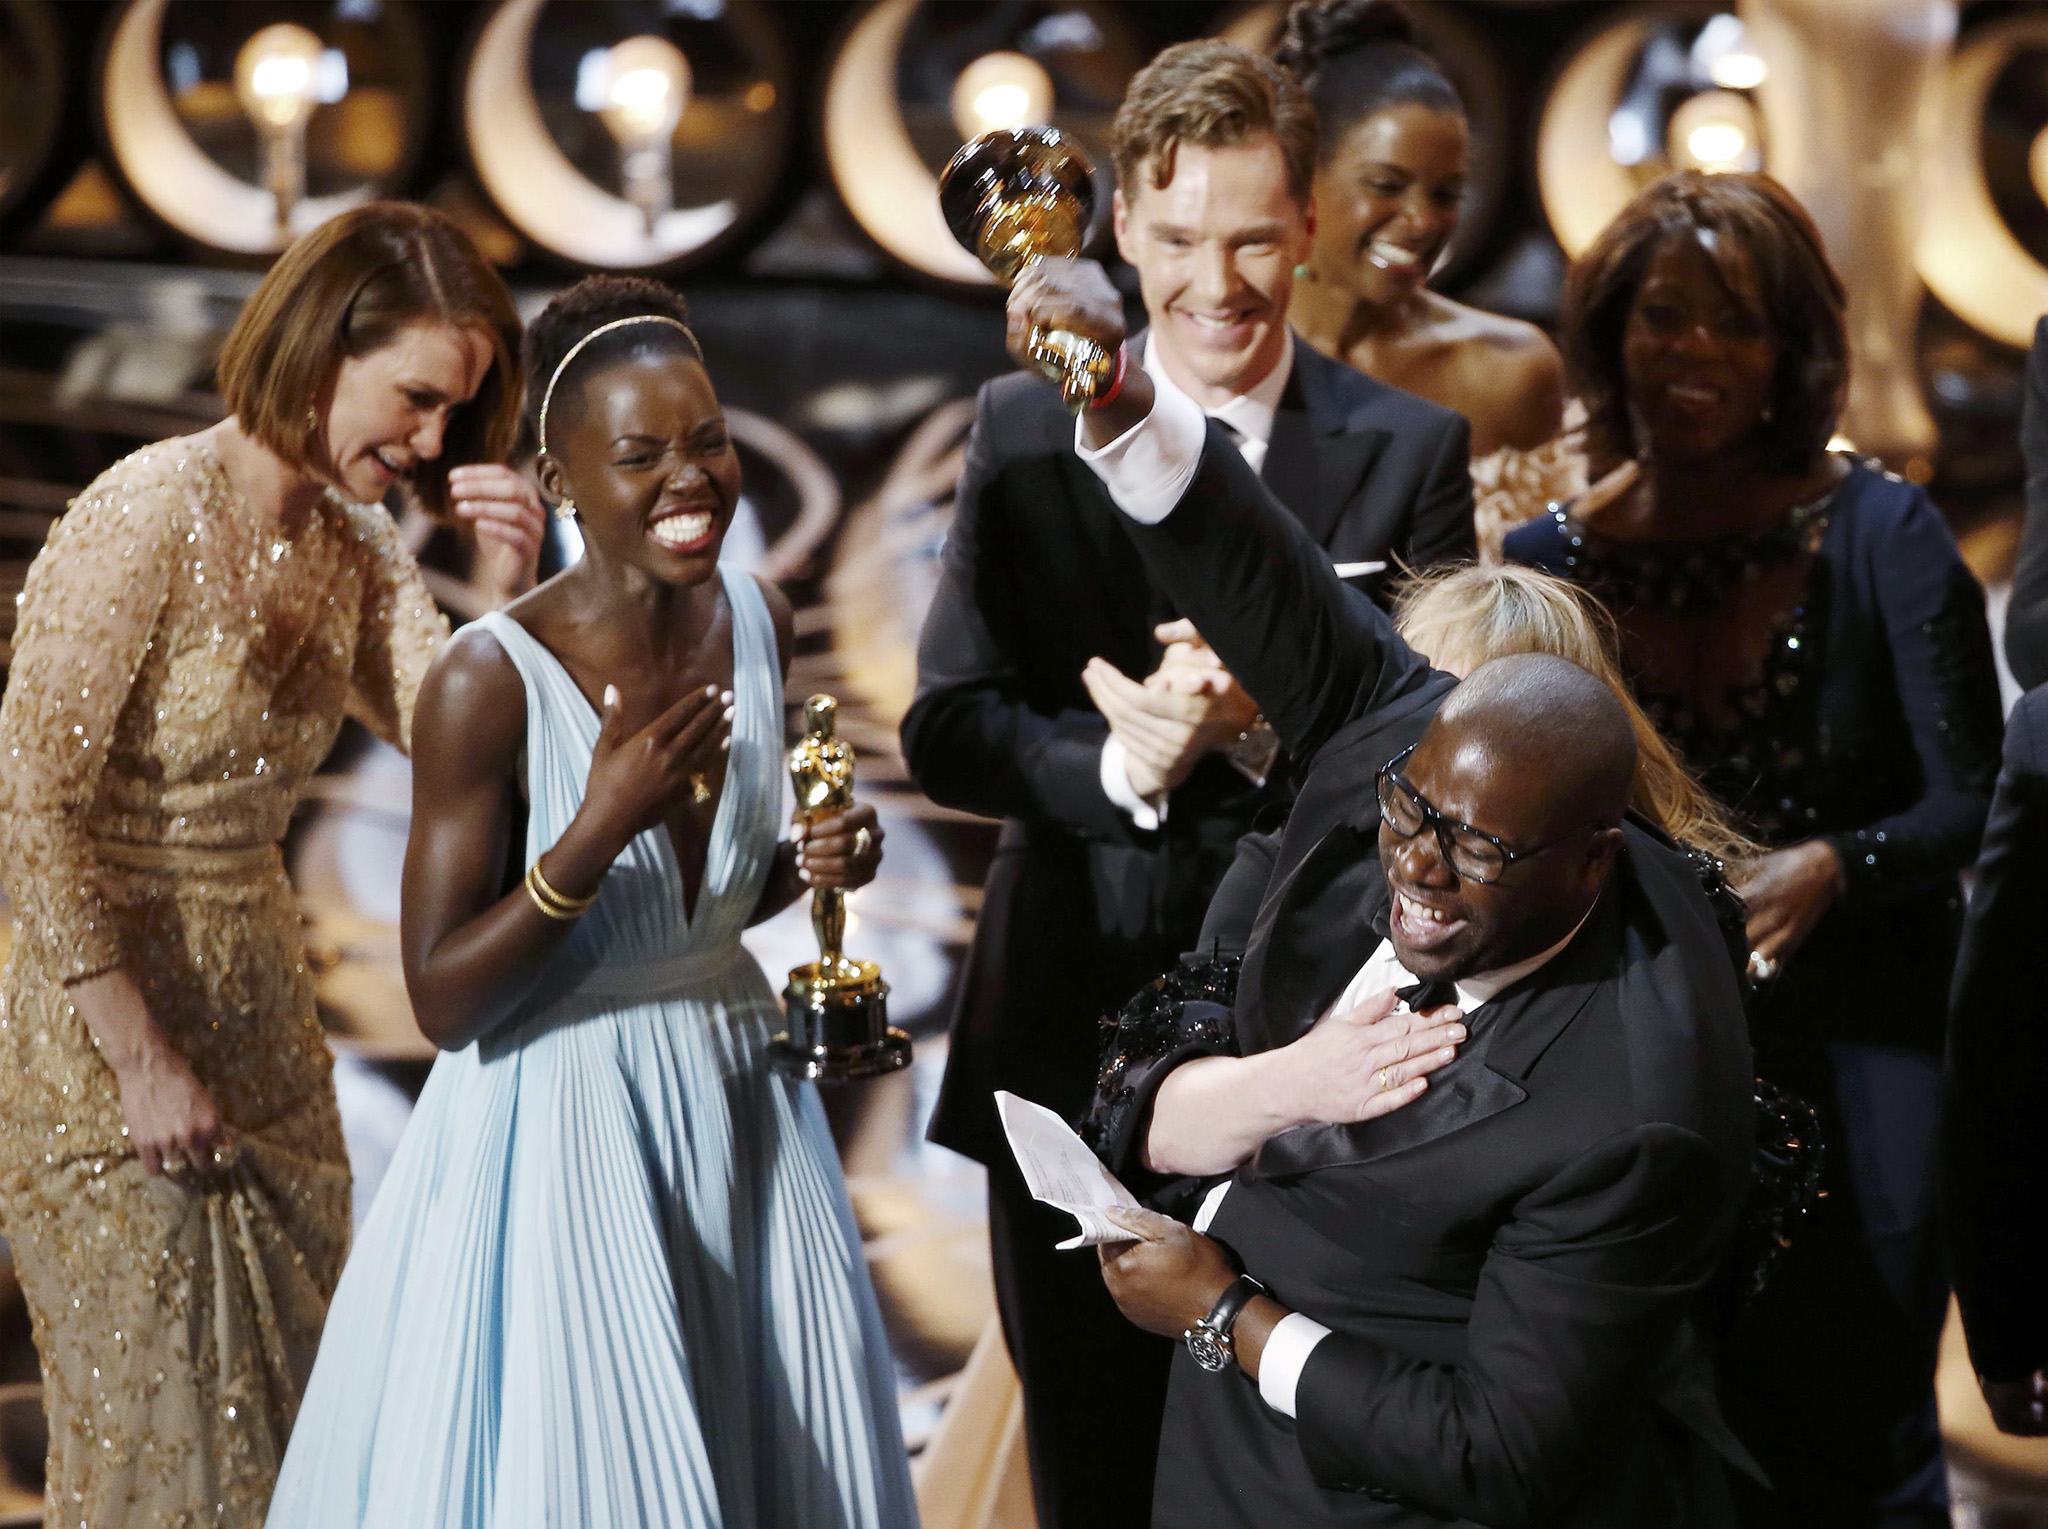 "REUTERS PICTURE HIGHLIGHT...ATTENTION EDITORS - REUTERS PICTURE HIGHLIGHT TRANSMITTED BY 0550 GMT ON MARCH 3, 2014    OSC1473  Director and producer Steve McQueen (R) celebrates after accepting the Oscar for best picture for his film ""12 Years a Slave"", with actress Lupita Nyong'o (L), at the 86th Academy Awards in Hollywood, California.  REUTERS/Lucy Nicholson     REUTERS NEWS PICTURES HAS NOW MADE IT EASIER TO FIND THE BEST PHOTOS FROM THE MOST IMPORTANT STORIES AND TOP STANDALONES EACH DAY. Search for ""TPX"" in the IPTC Supplemental Category field or ""IMAGES OF THE DAY"" in the Caption field and you will find a selection of 80-100 of our daily Top Pictures."